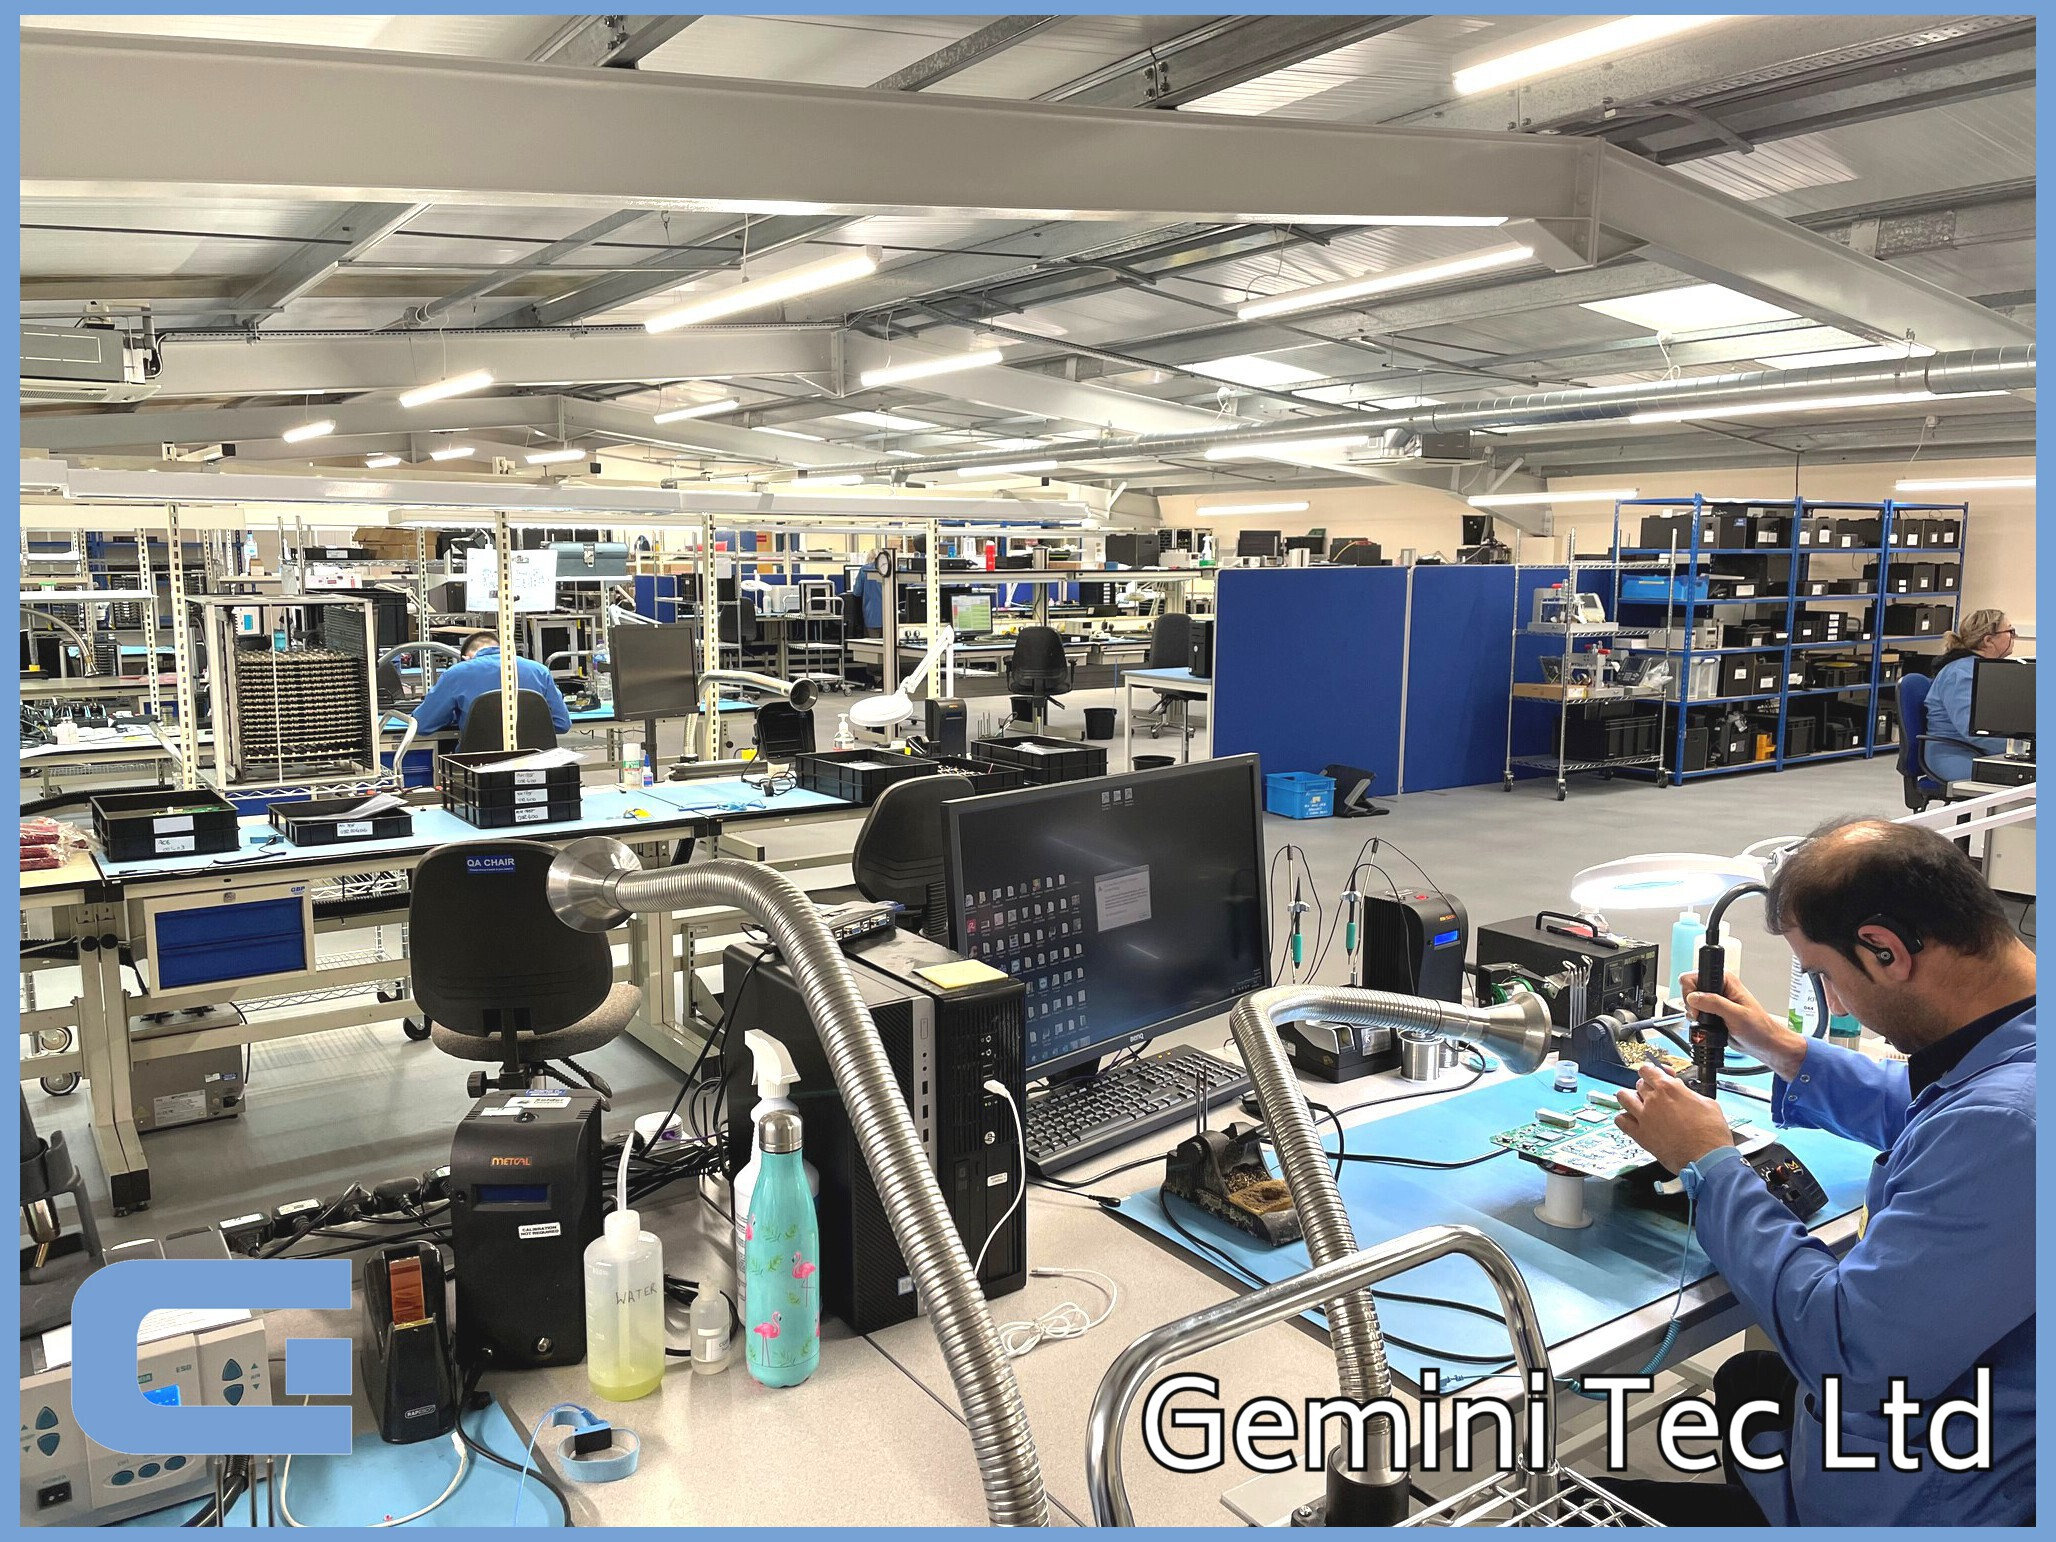 Complete product assembly at CEM G-Tec